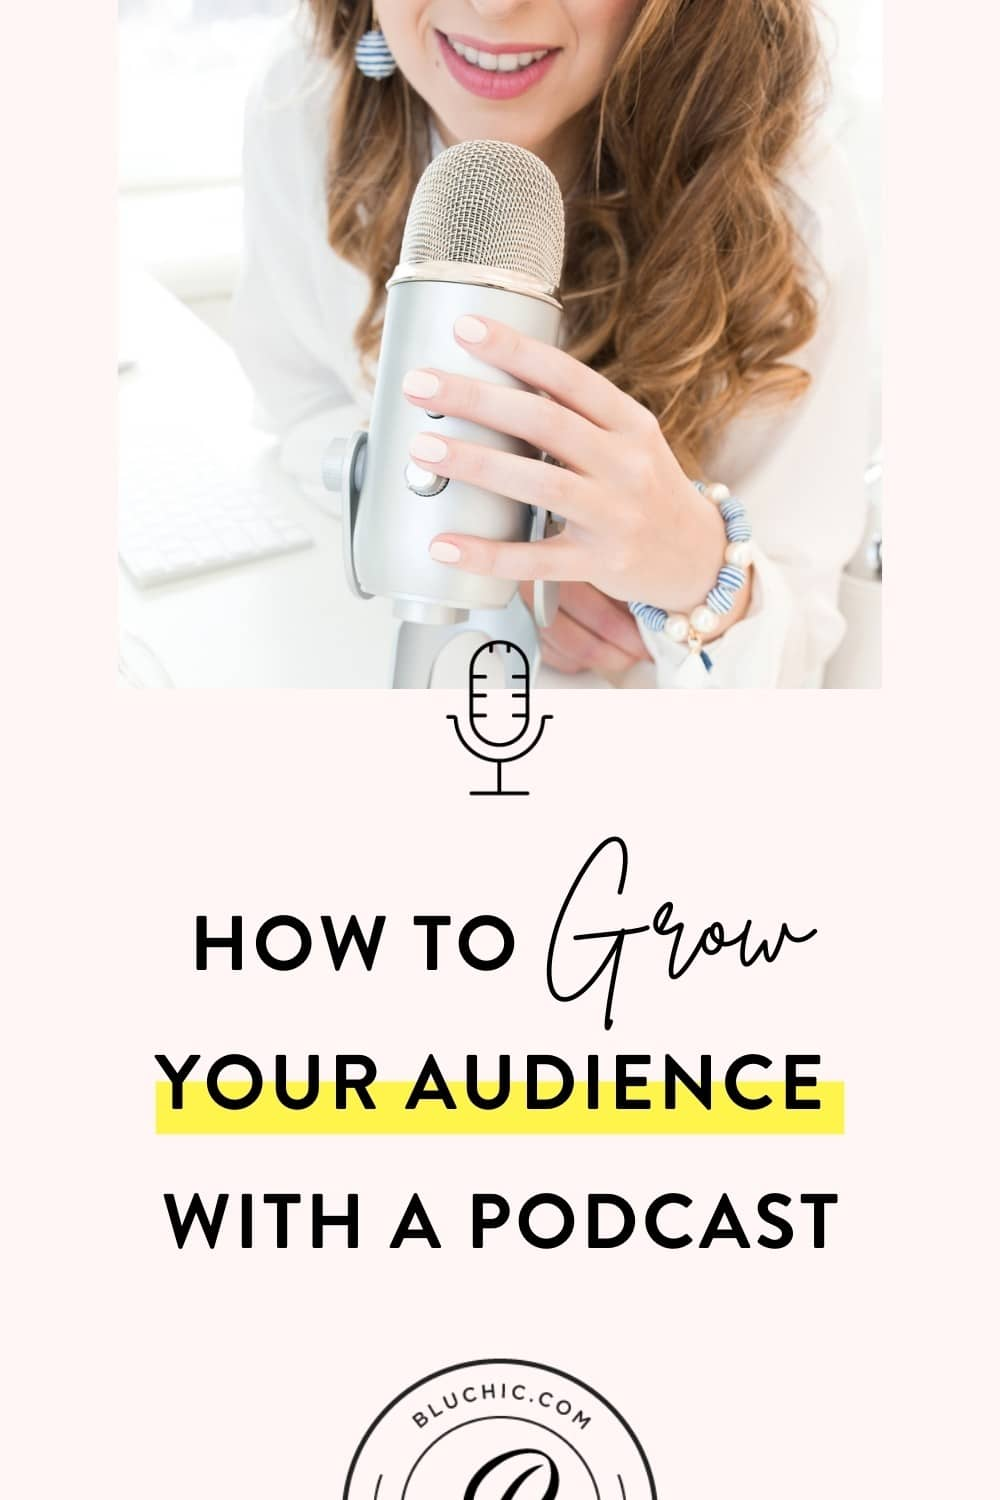 How to Grow Your Audience With a Podcast | Thinking about starting a podcast? That's great! But let's make sure it's worth your time and effort. Here are 5 ways to grow your audience with a podcast!